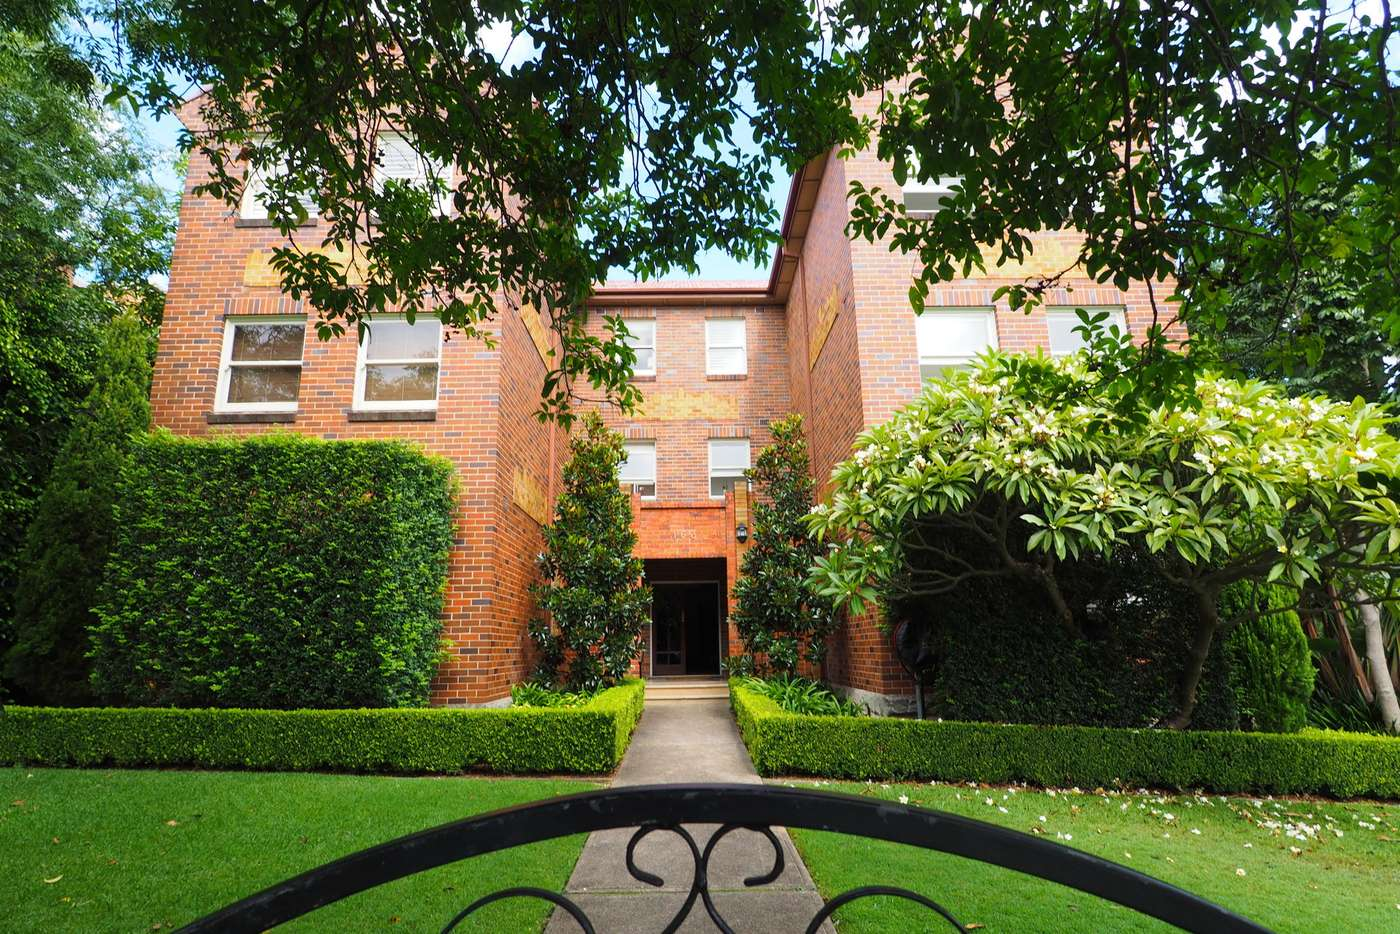 Main view of Homely apartment listing, 7/163 Avenue Road, Mosman NSW 2088